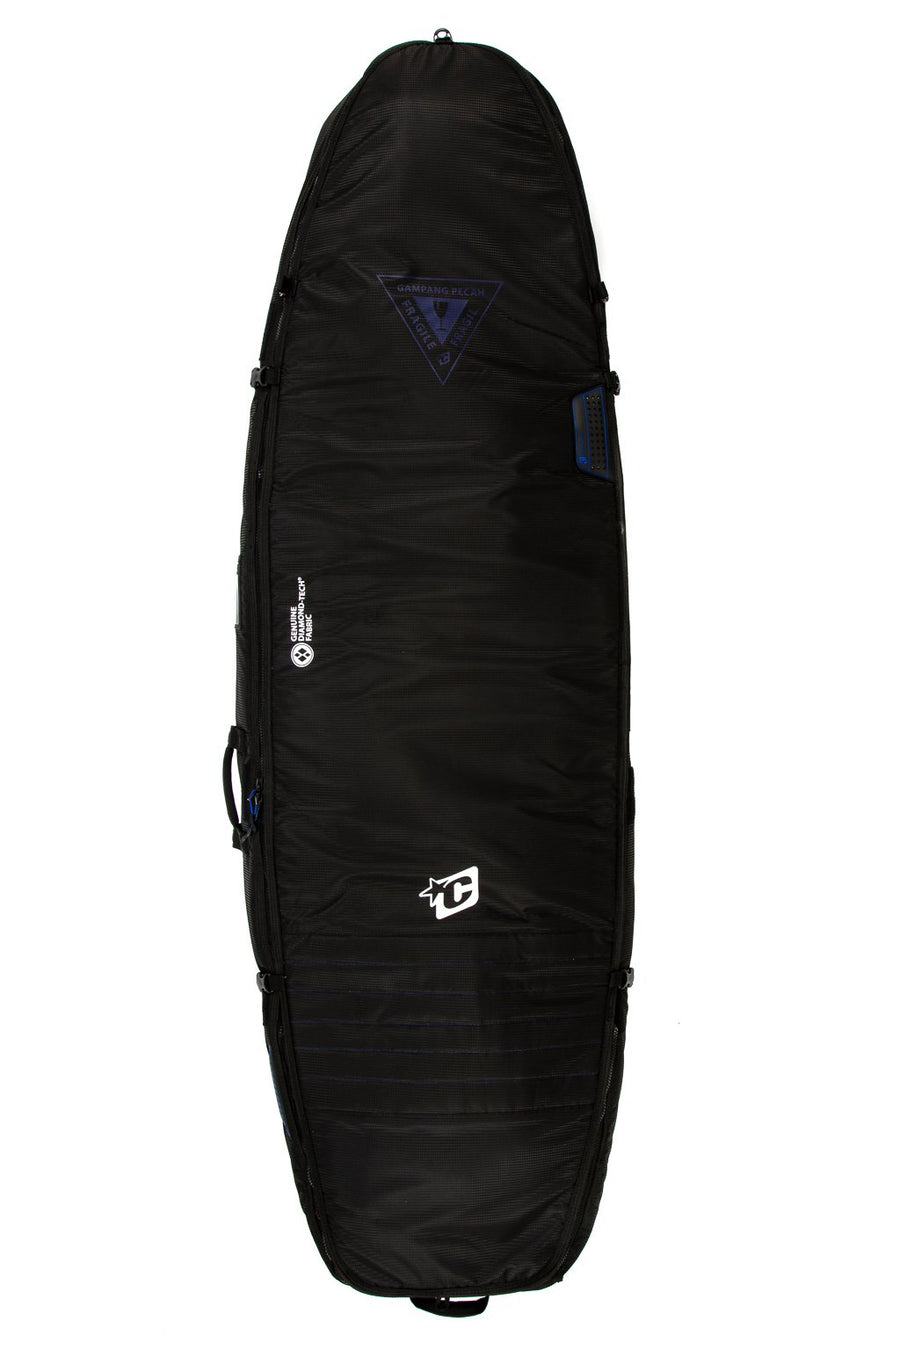 FUNBOARD ALL ROUNDER : BLACK